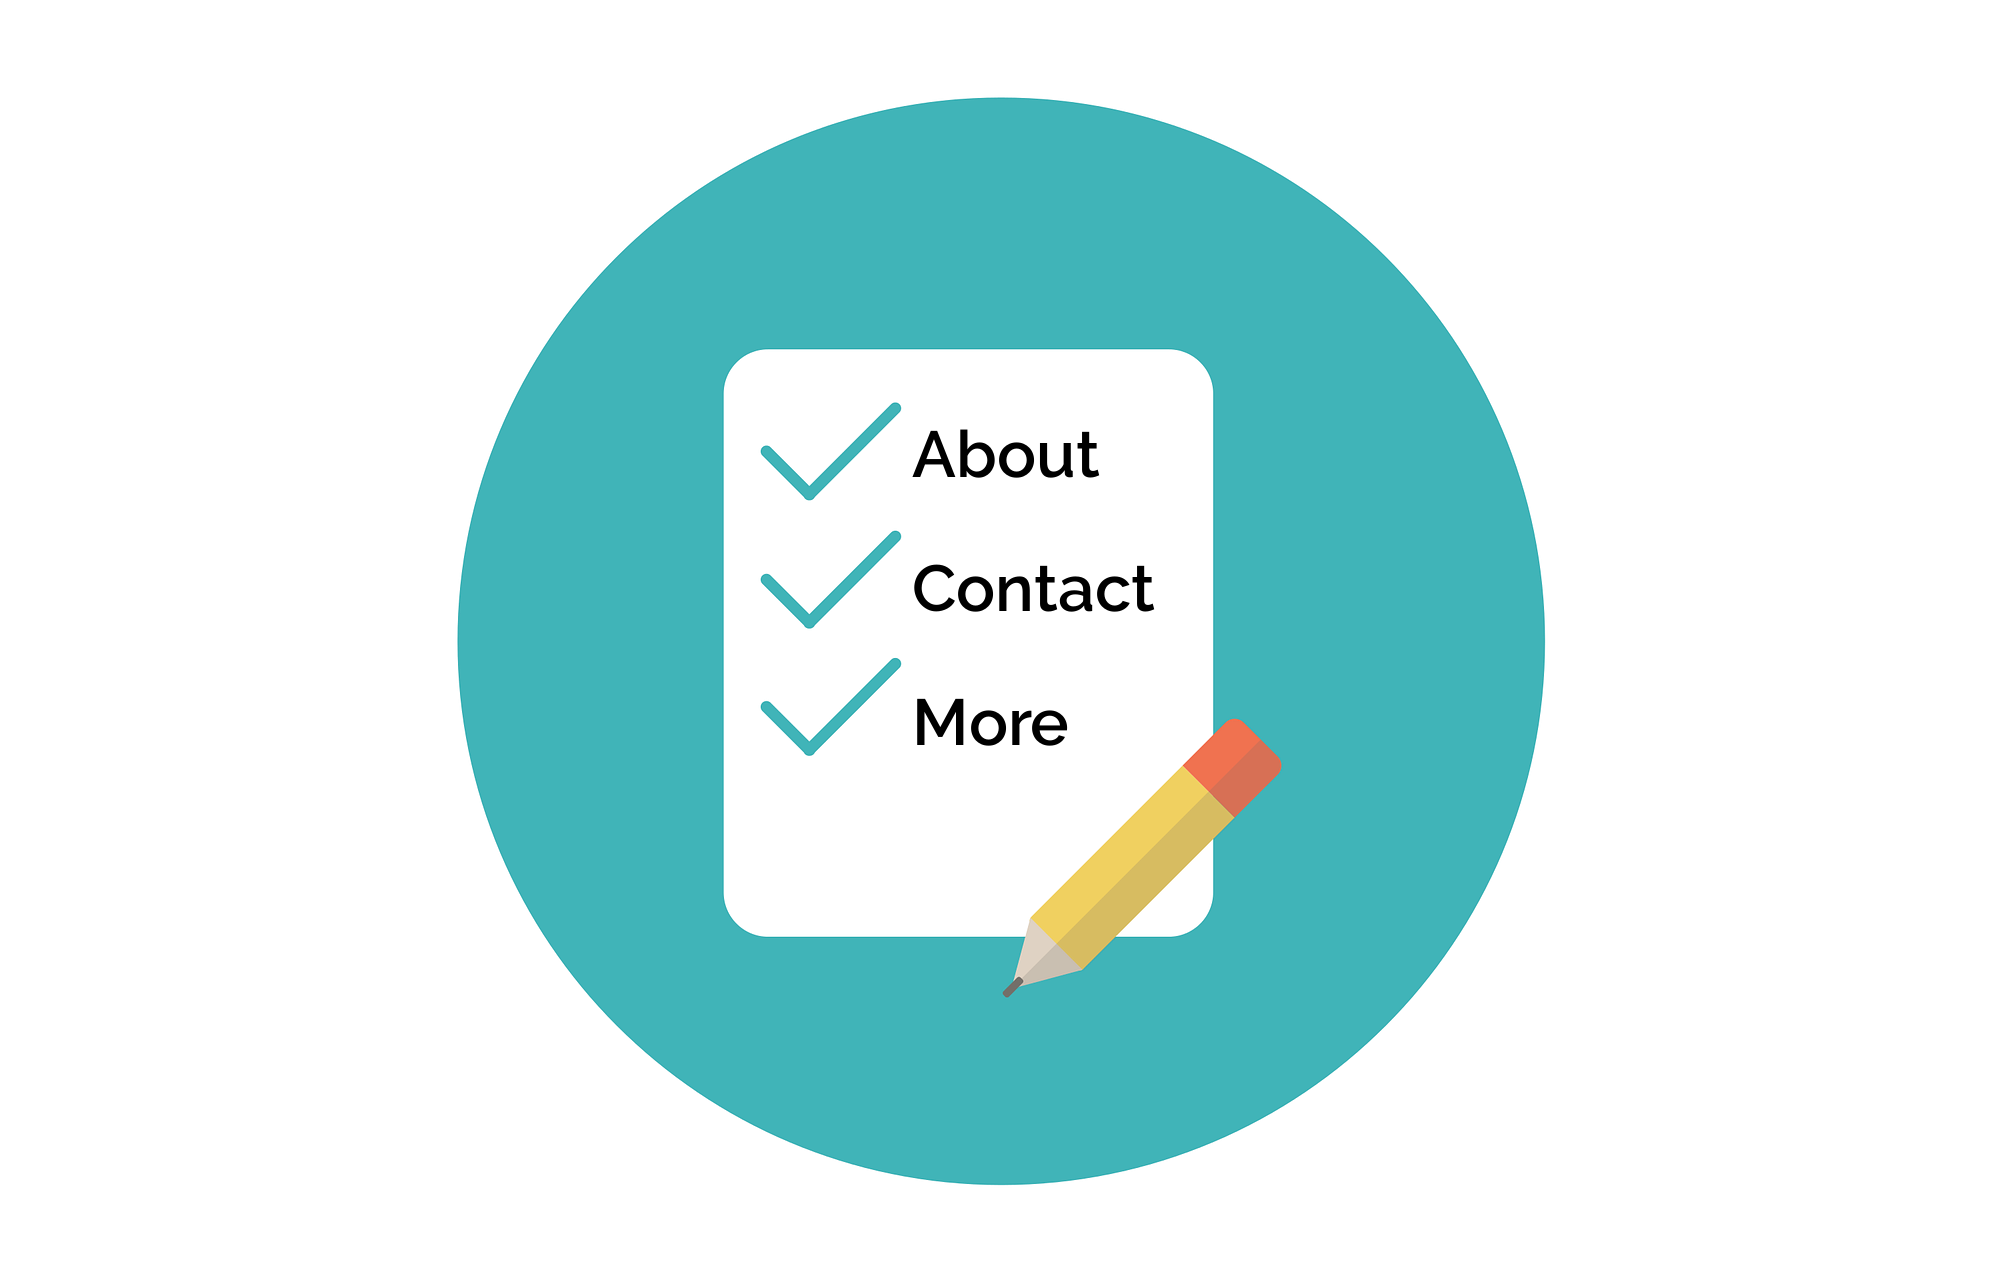 Smart Site setup includes supporting pages, like About and Contact.